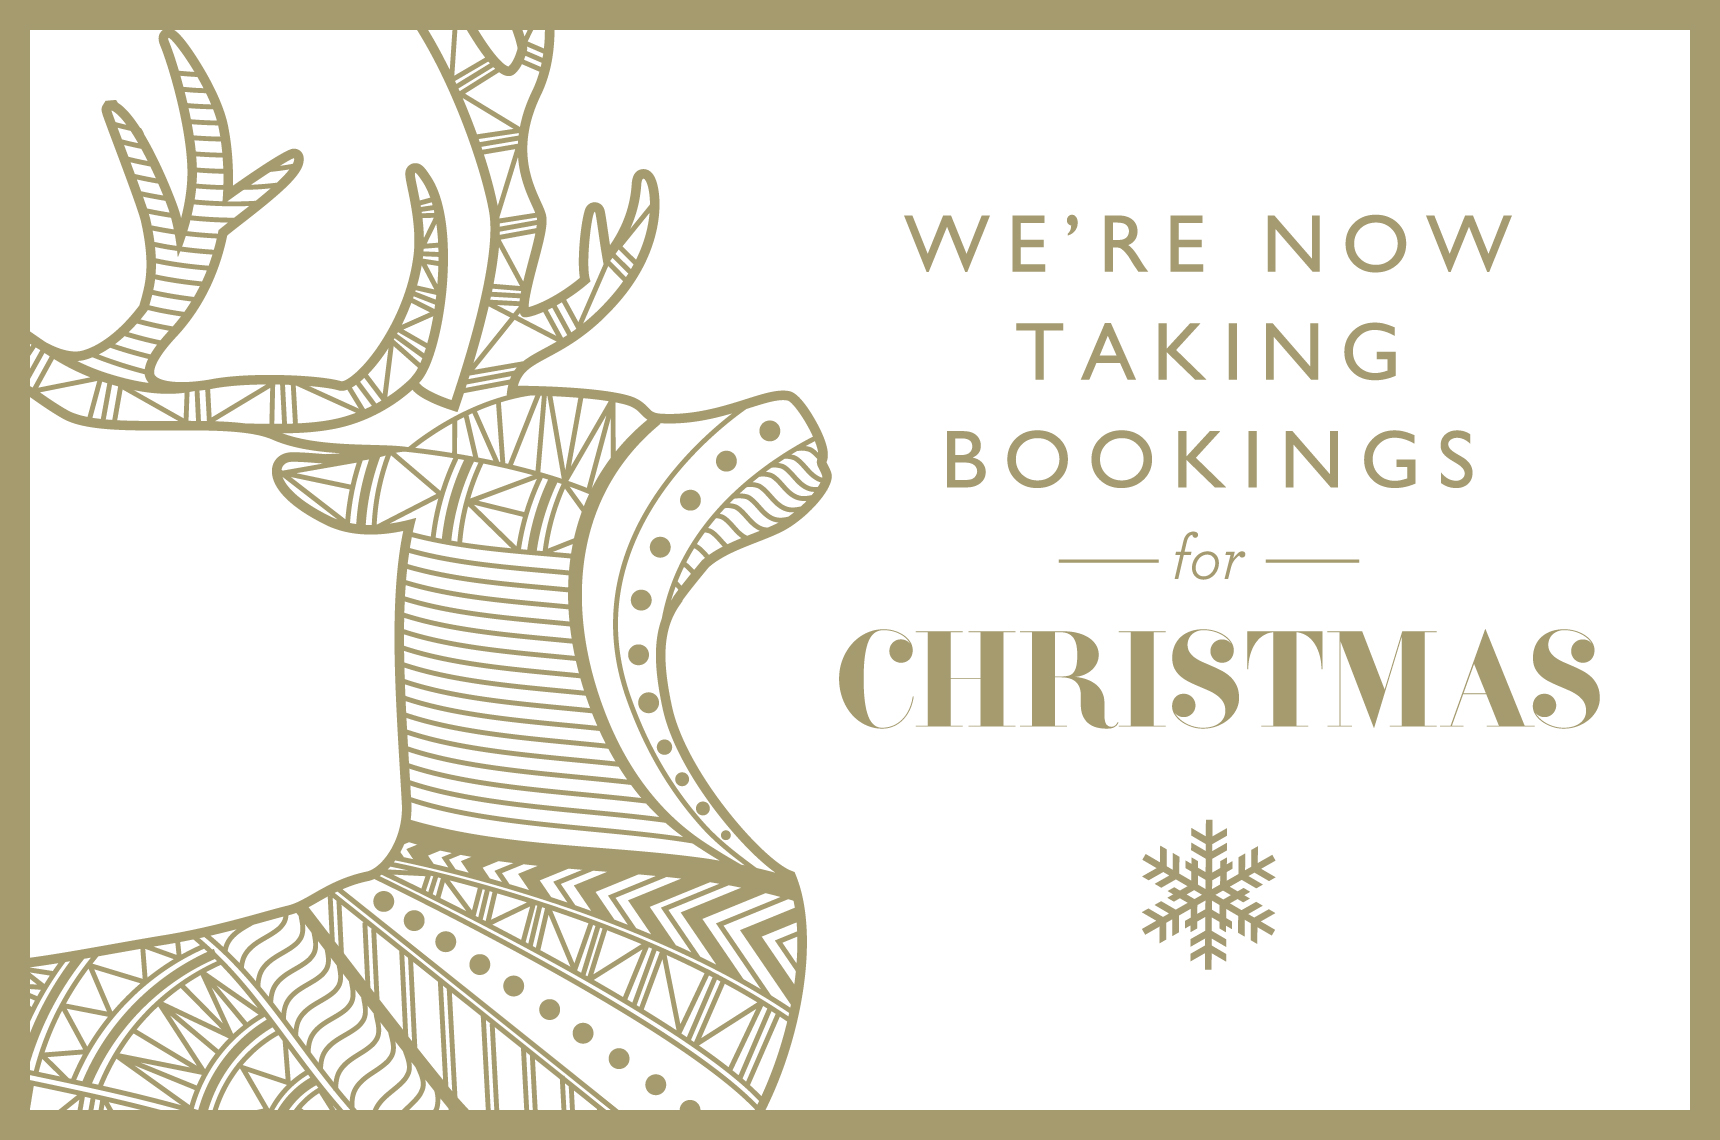 Christmas Prebookings - The Curious Pig in the Parlour